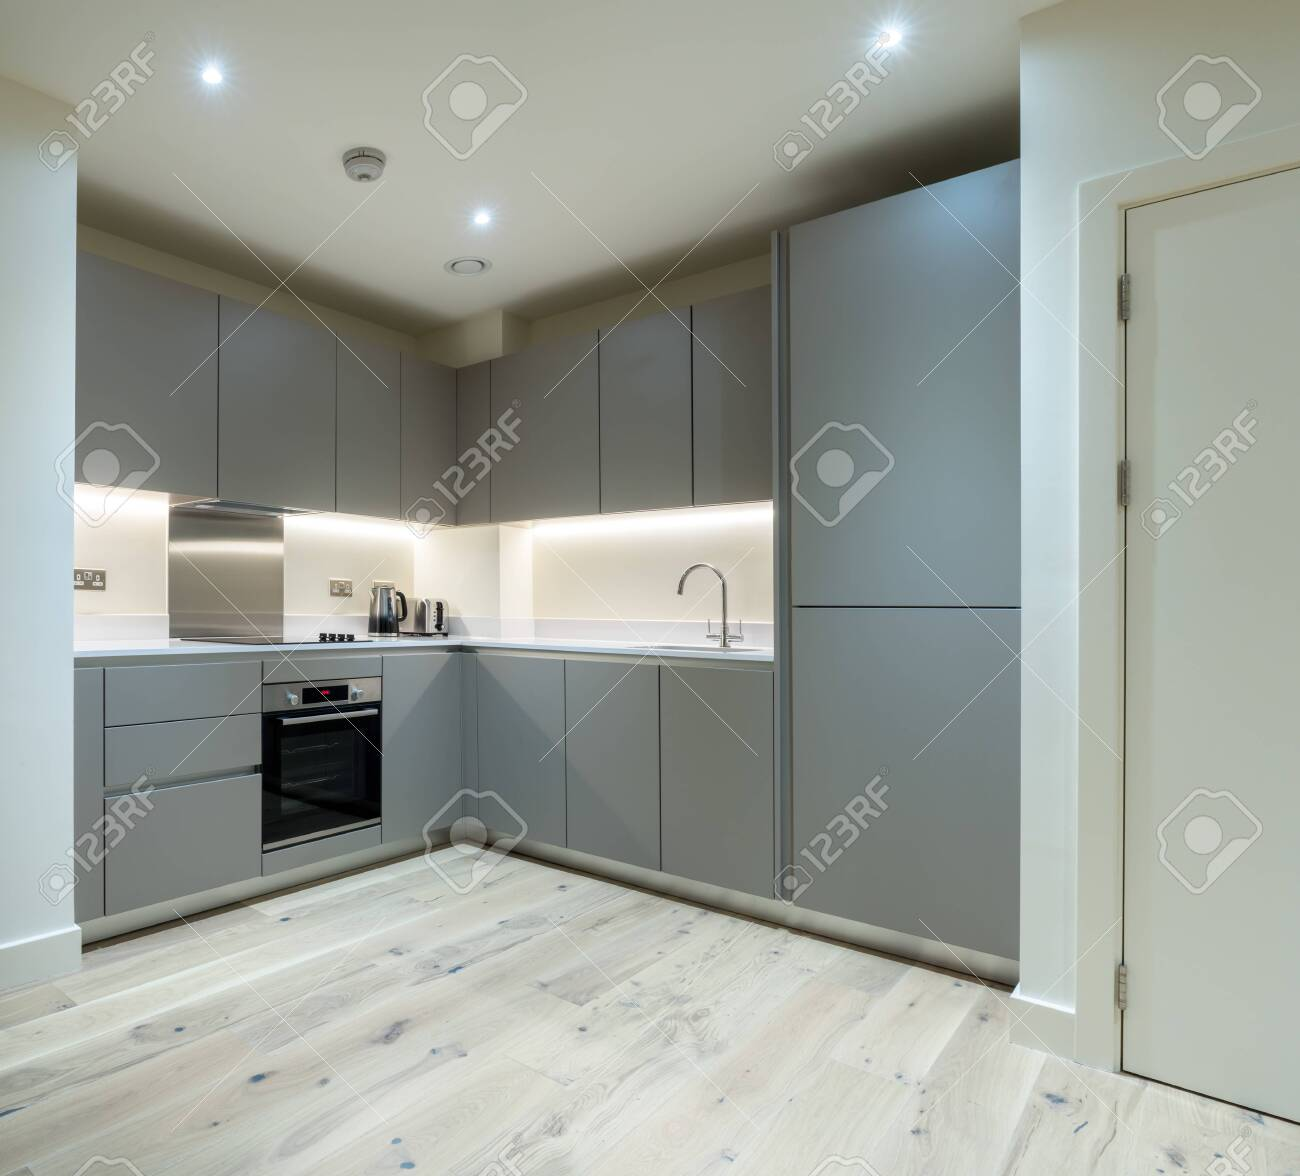 Clean new apartment kitchen in gray with modern appliances and..